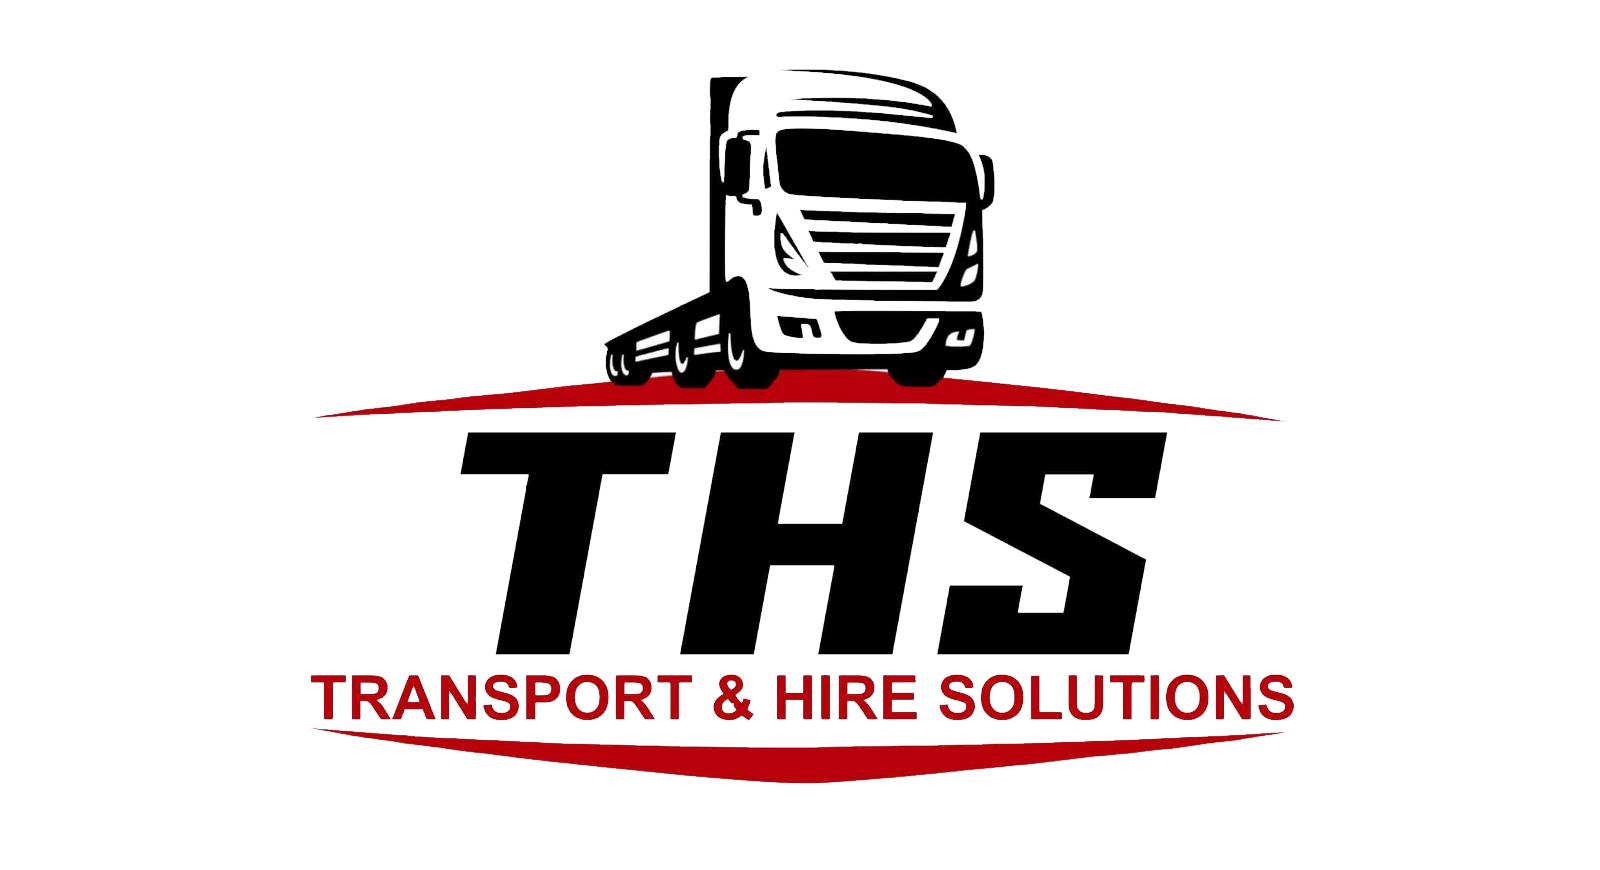 Transport and Hire Solutions